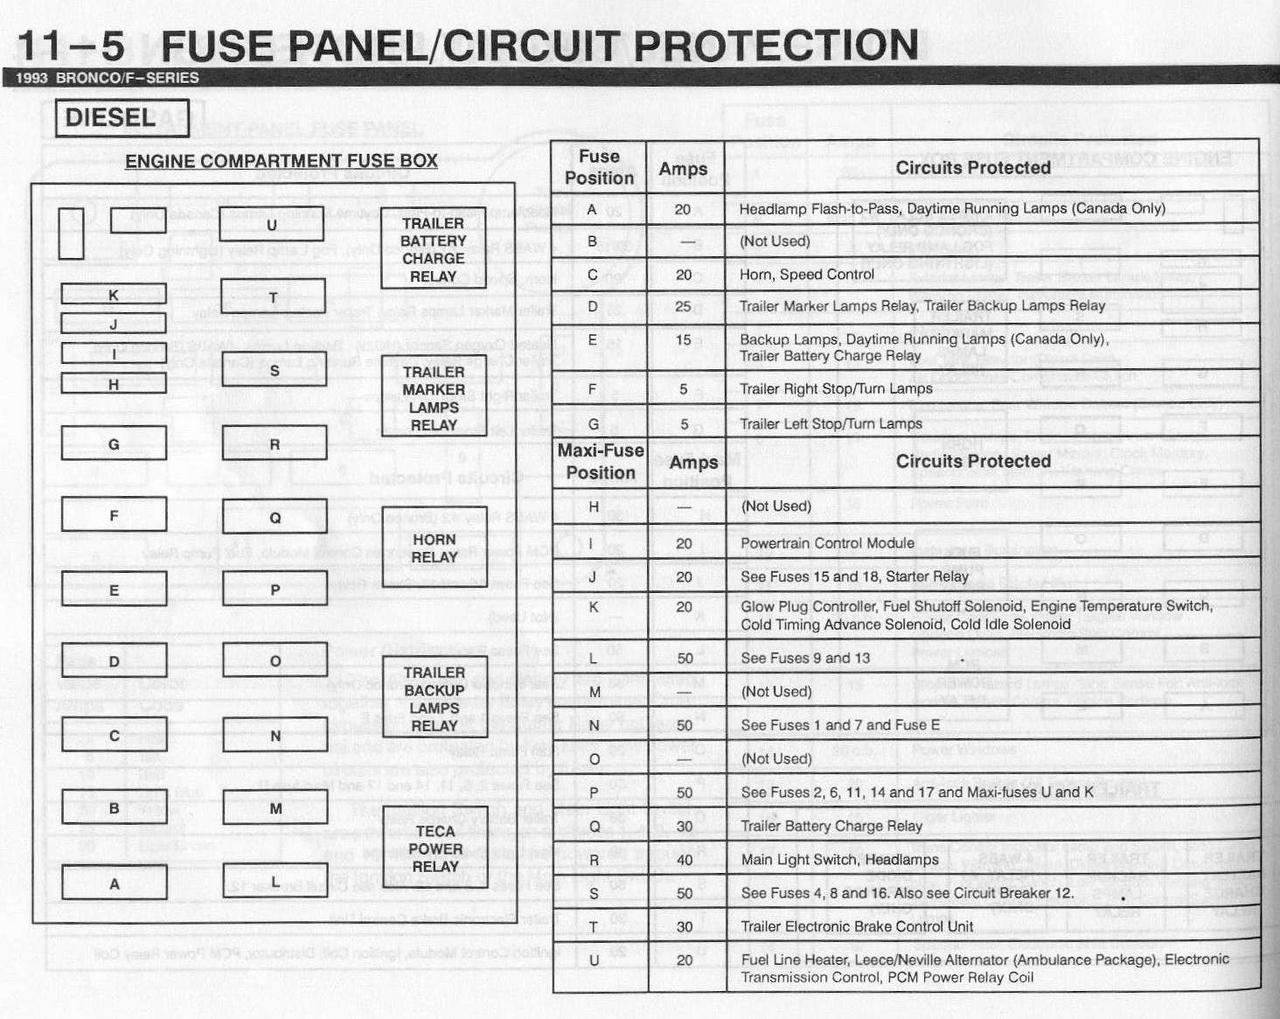 1991 F250 Fuse Box Simple Wiring Diagram 91 Toyota Block 1998 Ford F 250 Data 2001